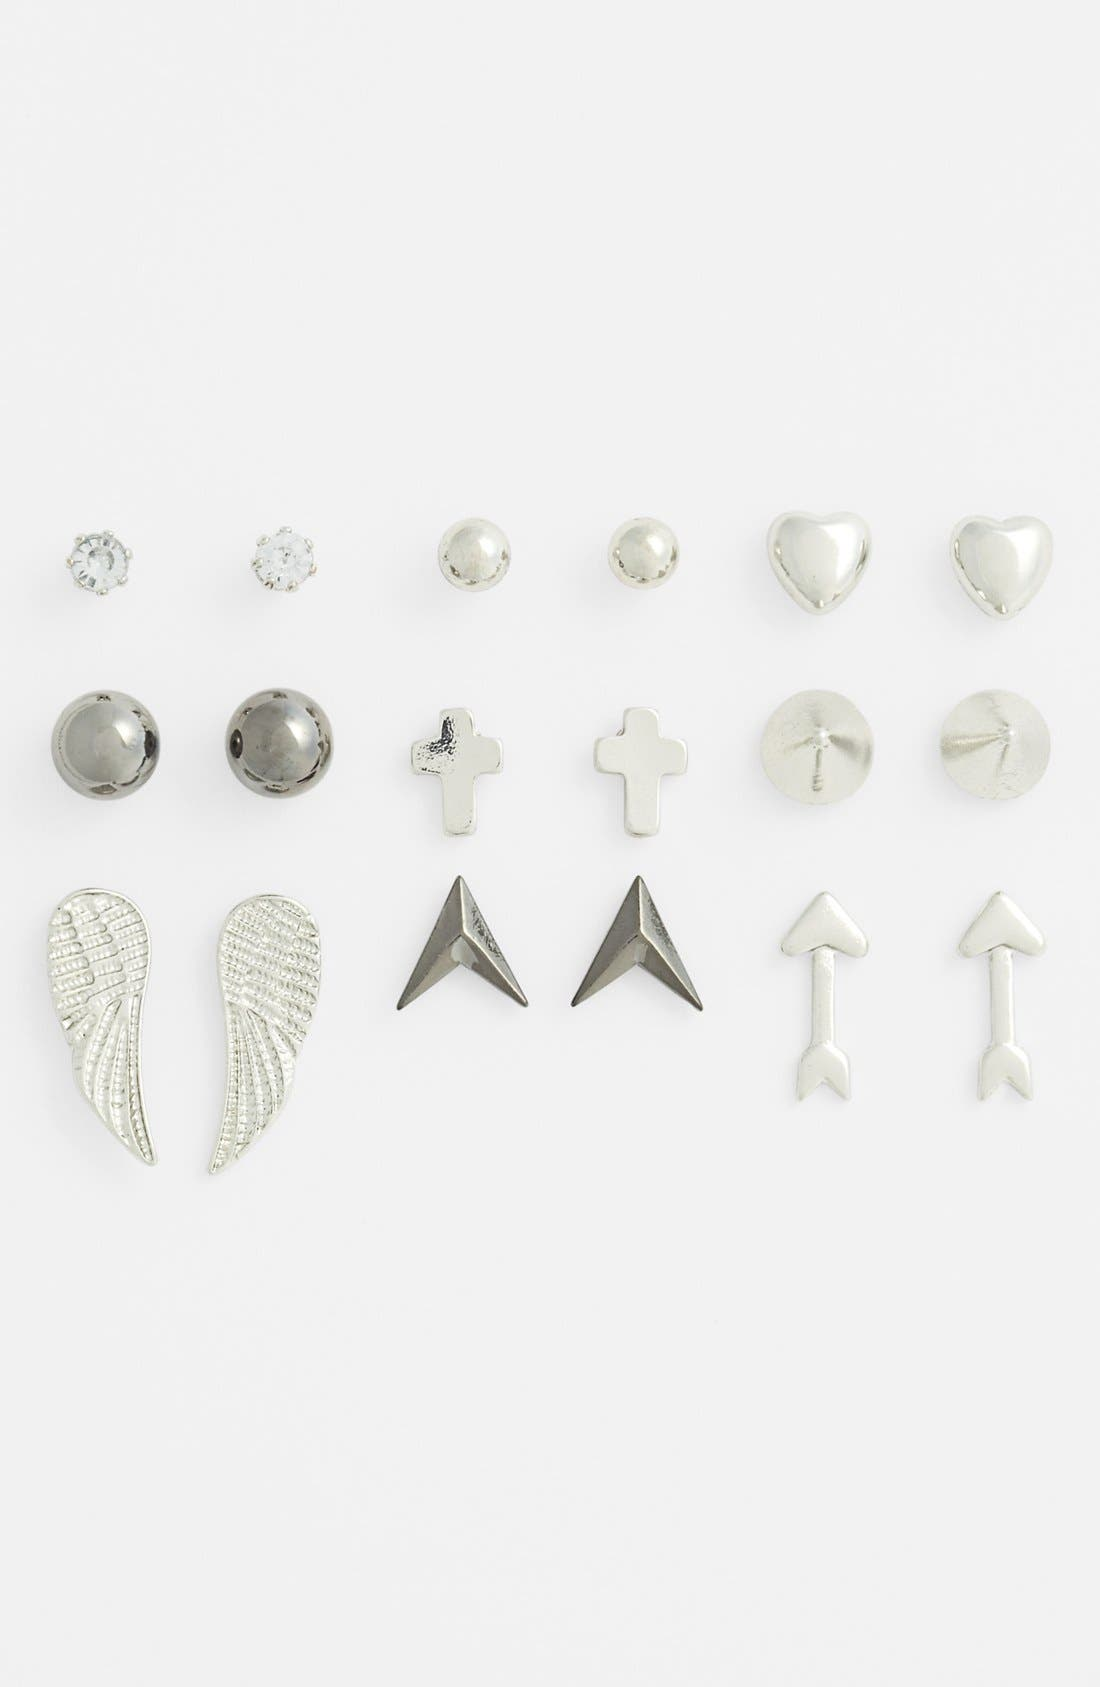 Alternate Image 1 Selected - Orion Assorted Earrings (Set of 9)